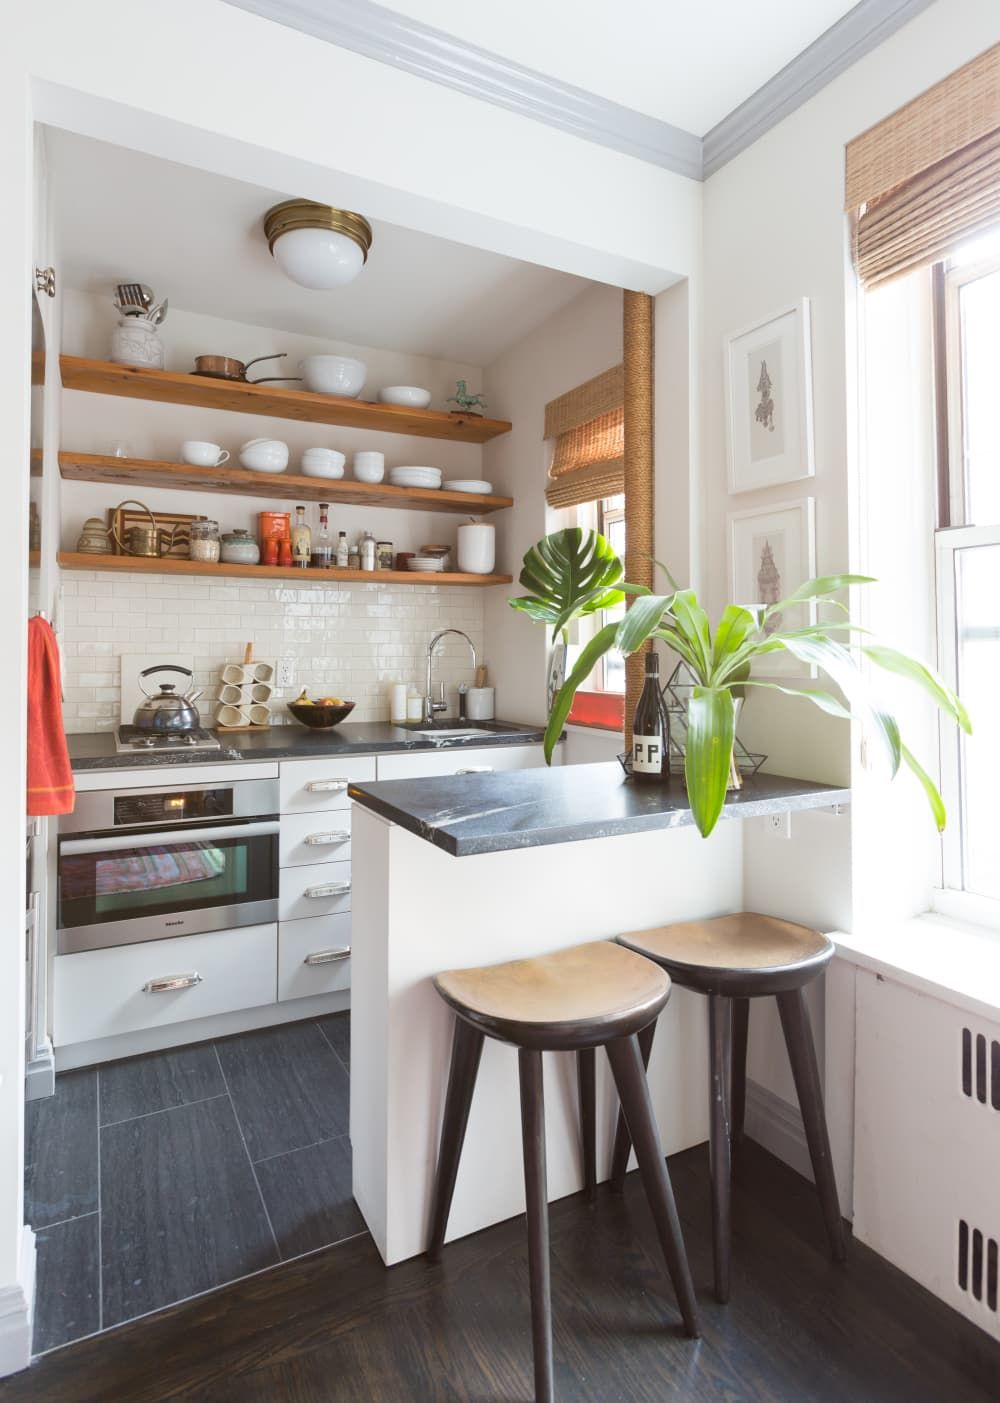 kitchen, black floor tiles, white subway backsplash, wooden floating shelves, white bottom cabinet, black stools